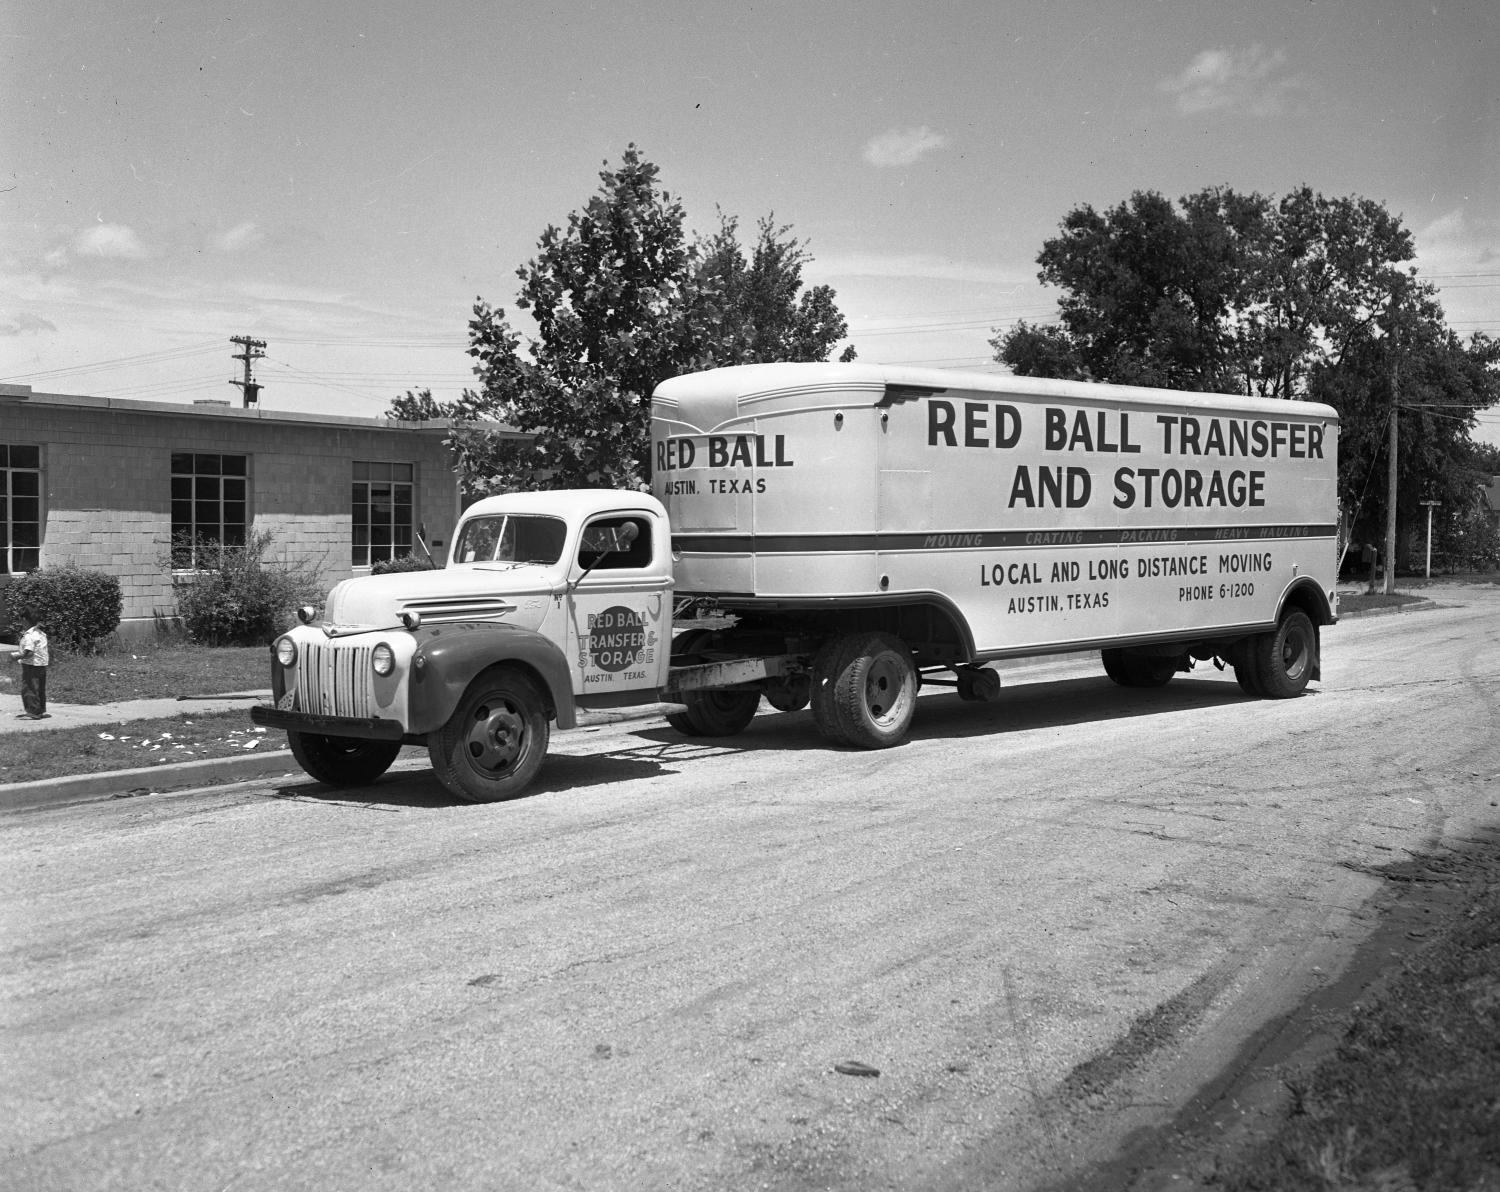 Red Ball Transfer And Moving Building Truck The Portal To Texas History